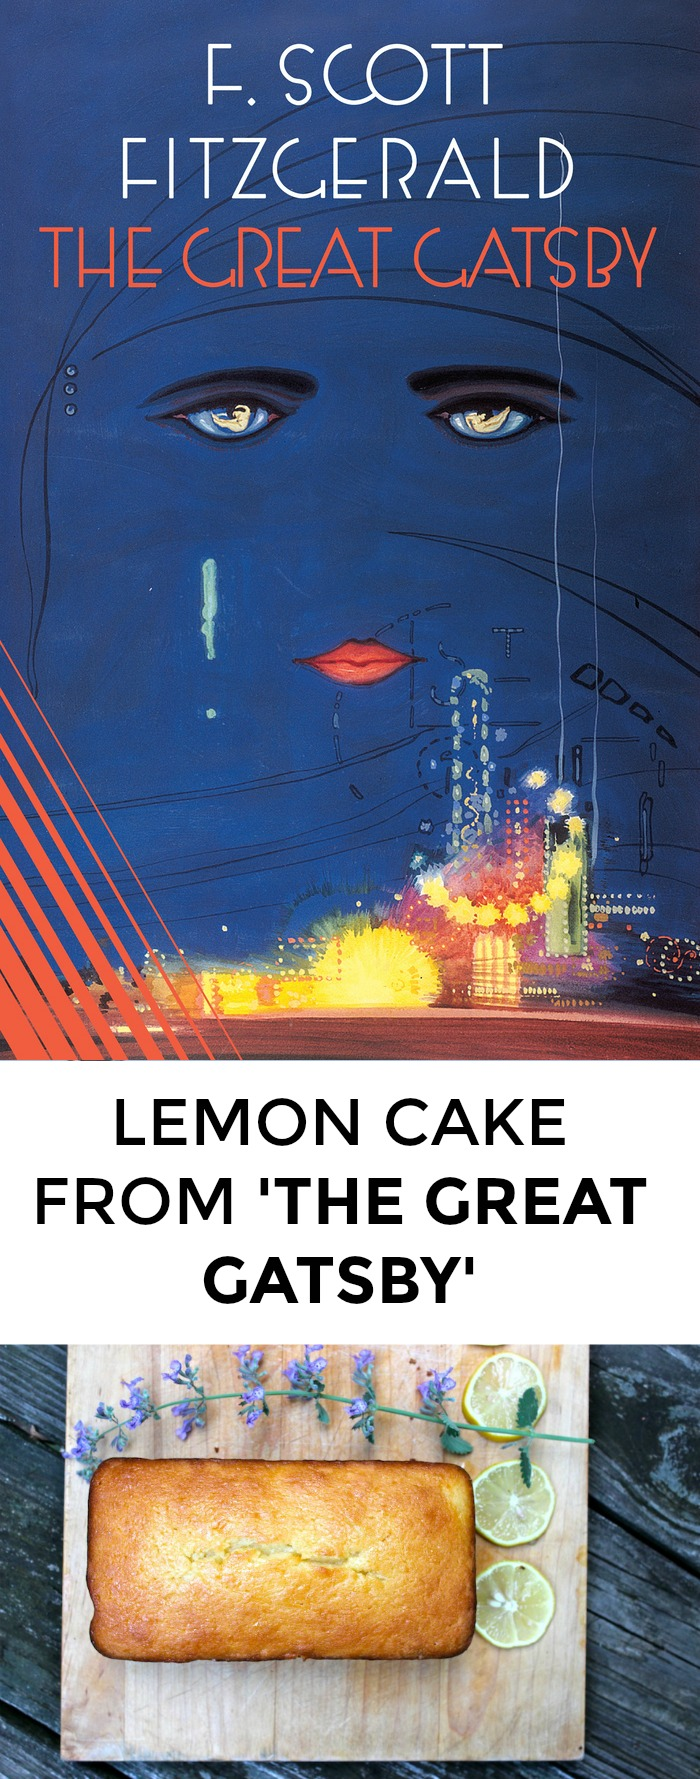 Looking for an amazing recipe from The Great Gatsby? Look no further! Win your next book club meeting with this gorgeous, tart lemon cake. >> yesandyes.org